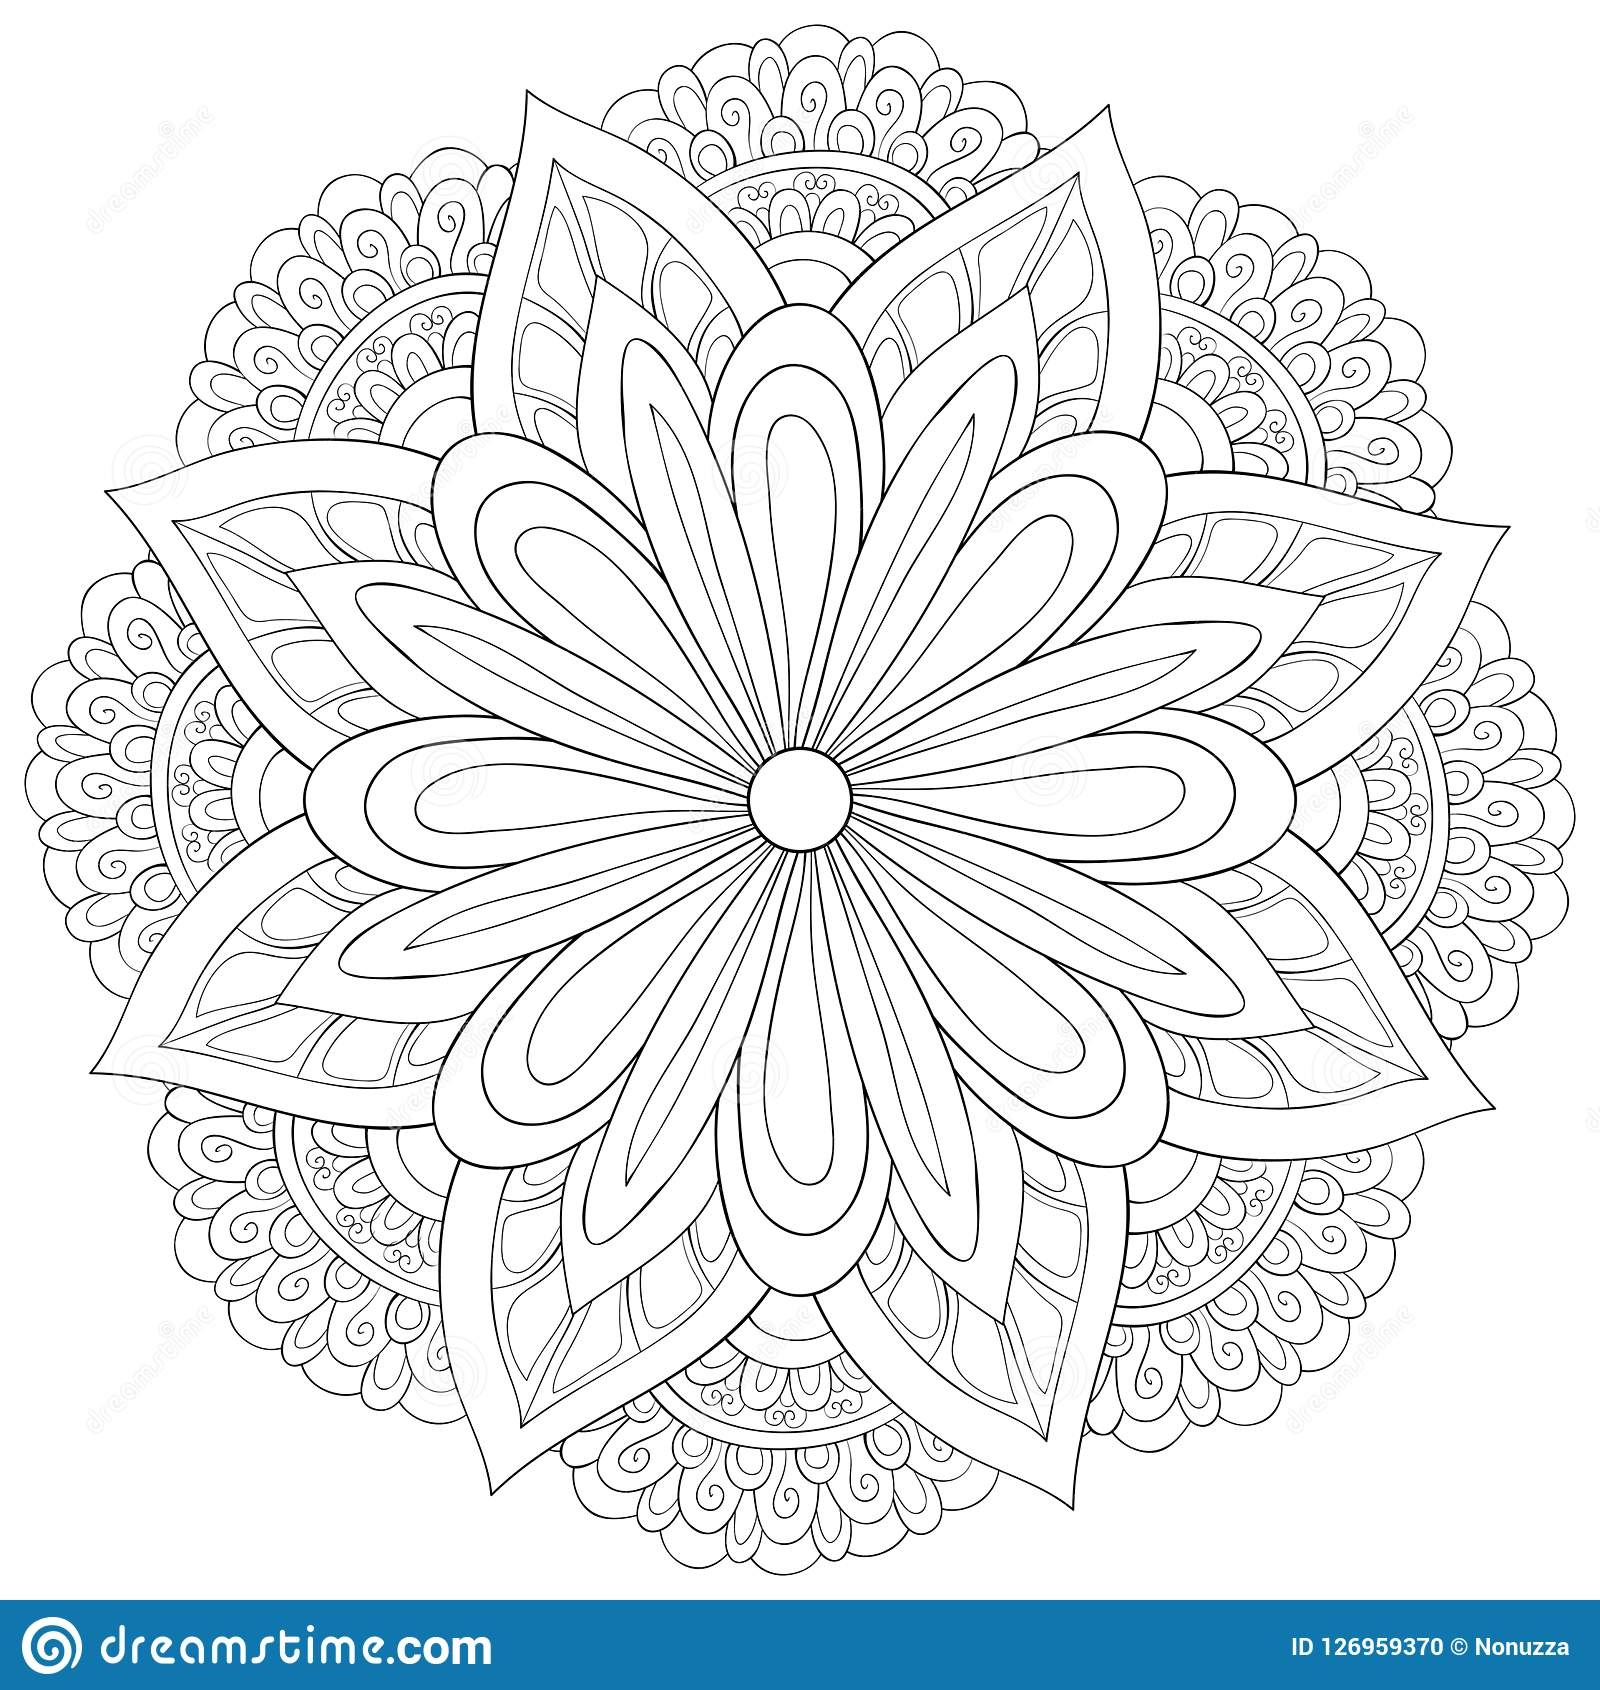 coloring book ~ Zen Coloring Pages For Kids At Getdrawings Free ...   1690x1600